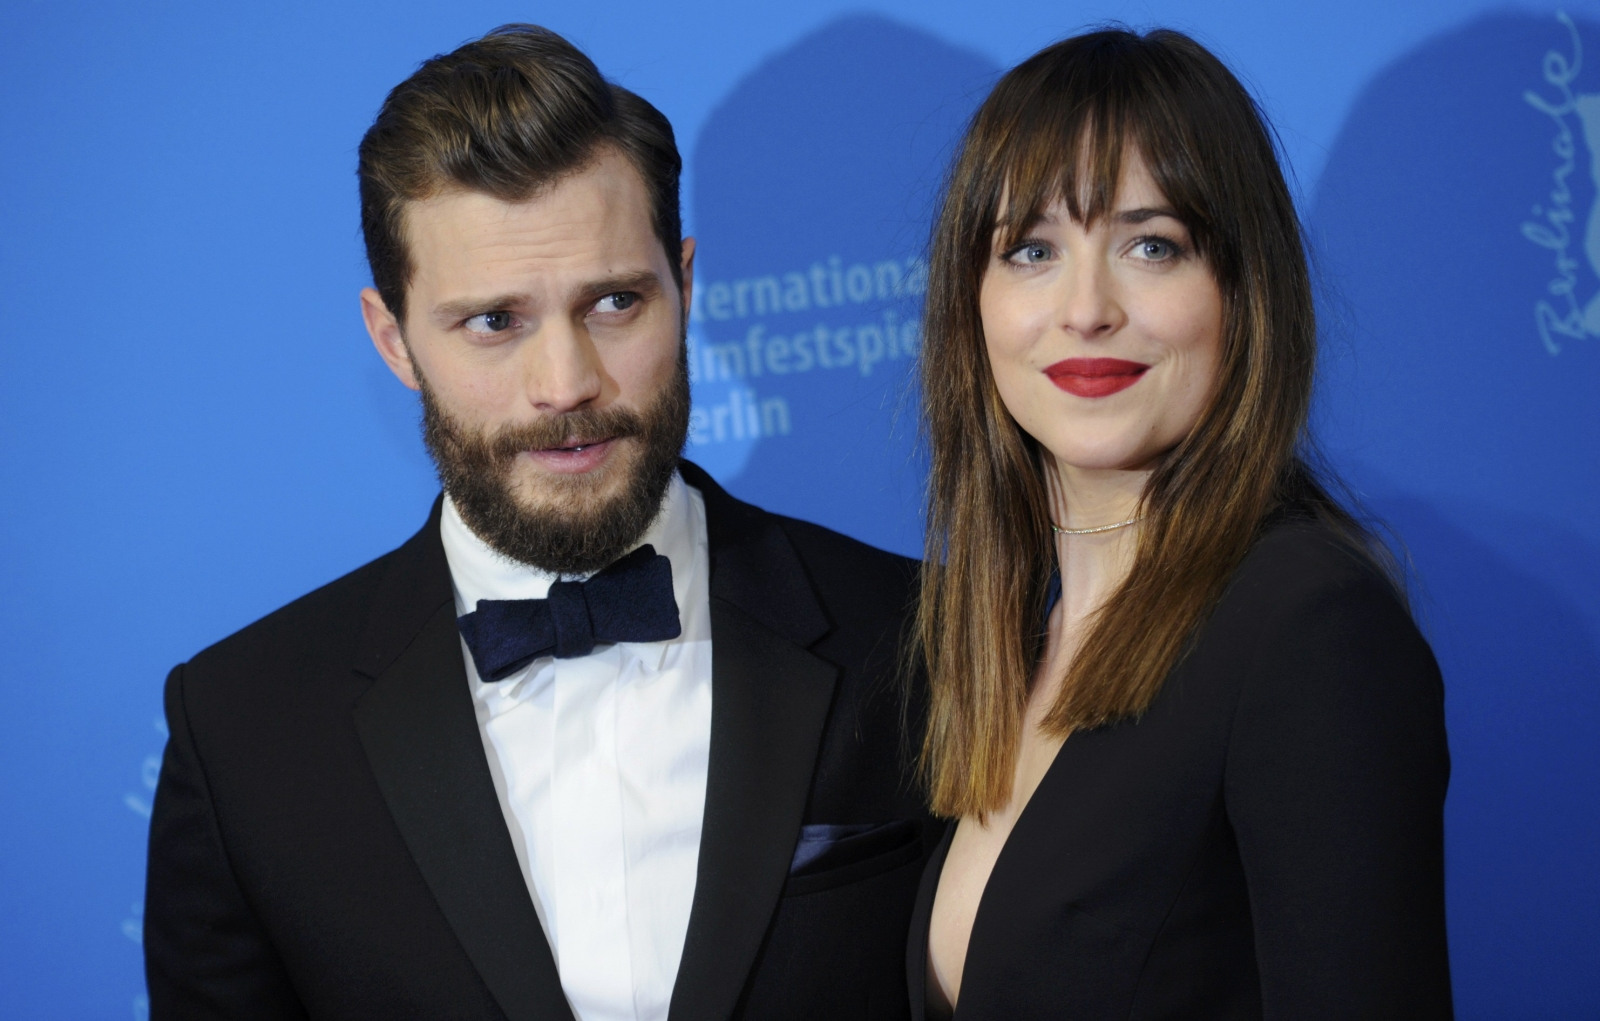 Jamie Dornand and Dakota Johnson face frenetic fans as Berlin hosts world premiere of Fifty Shades of Grey